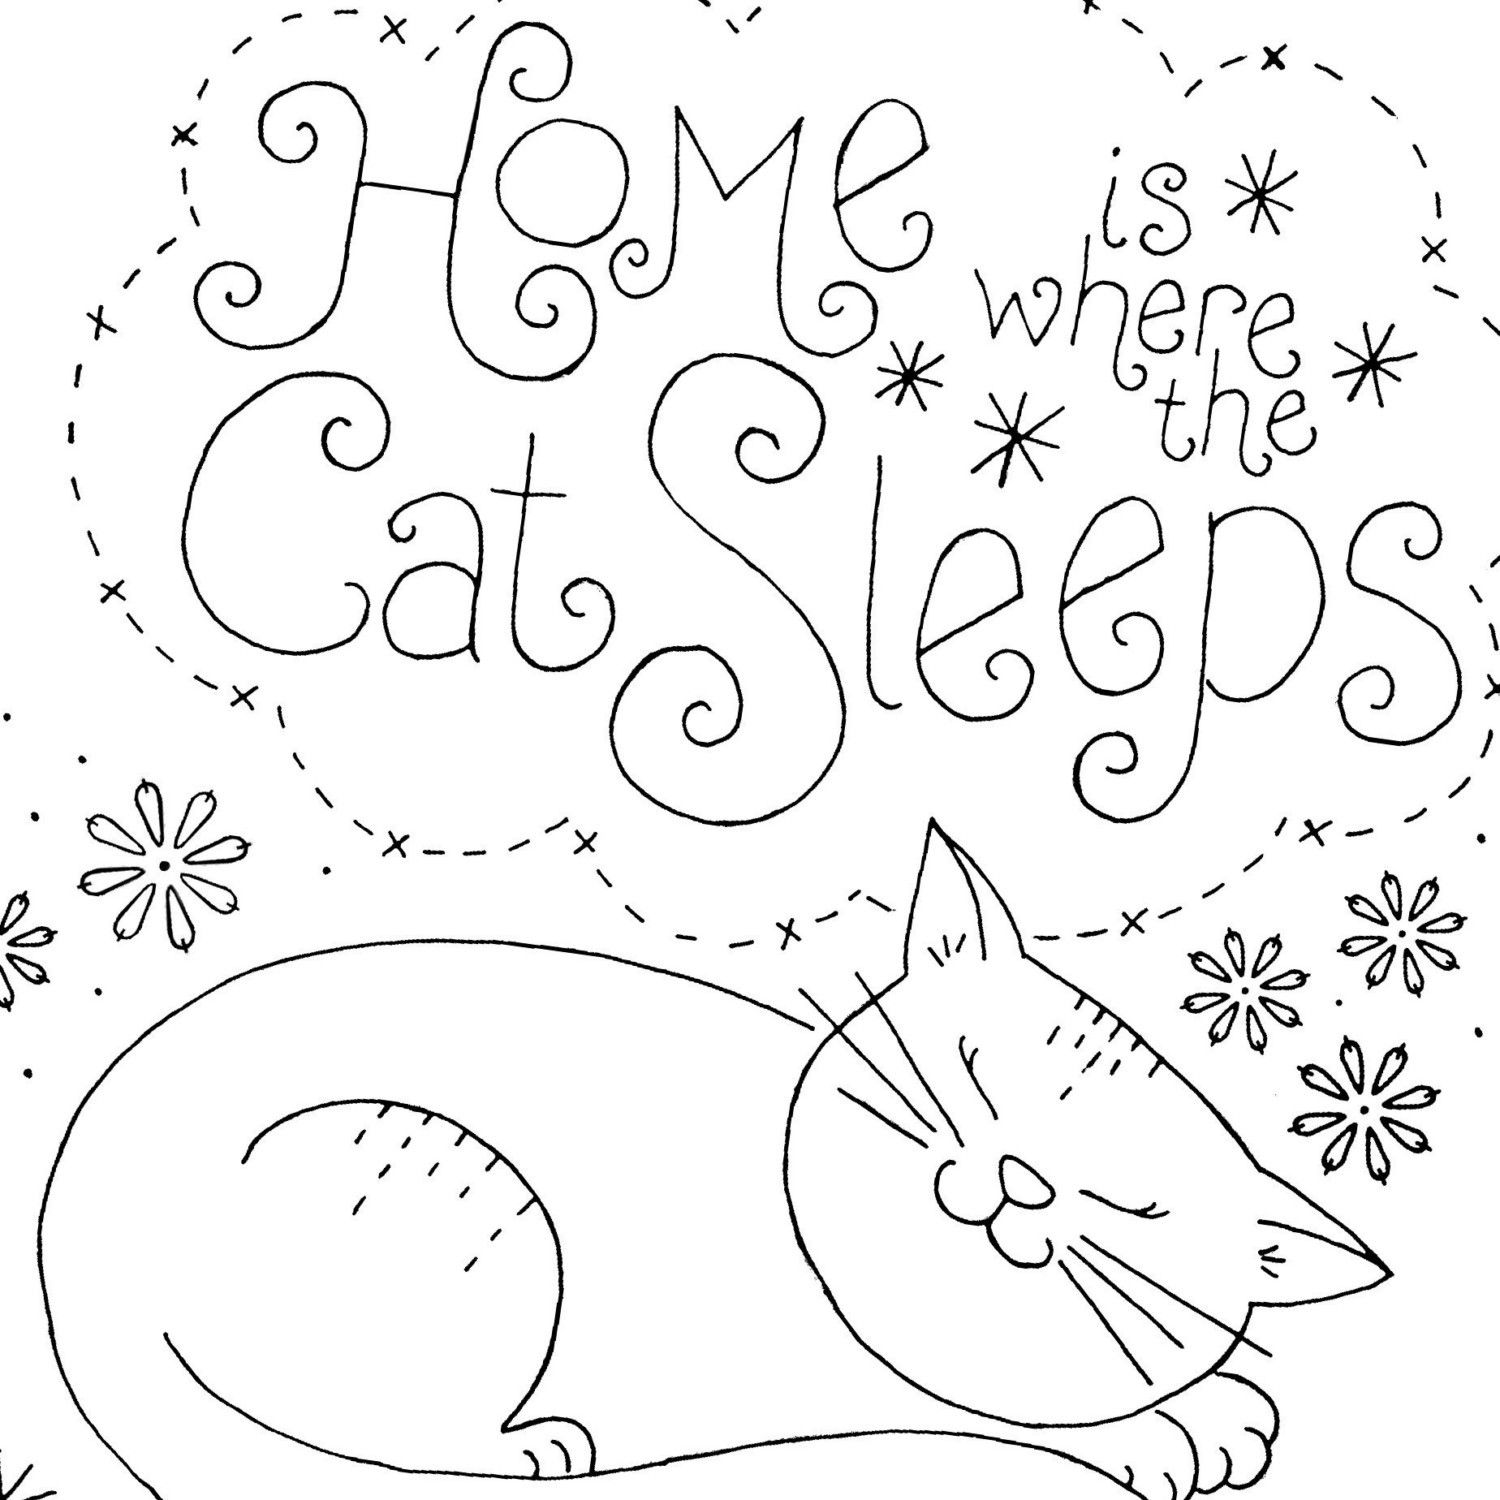 Embroidery pattern cat sleeping cat sleeping embroidery and patterns